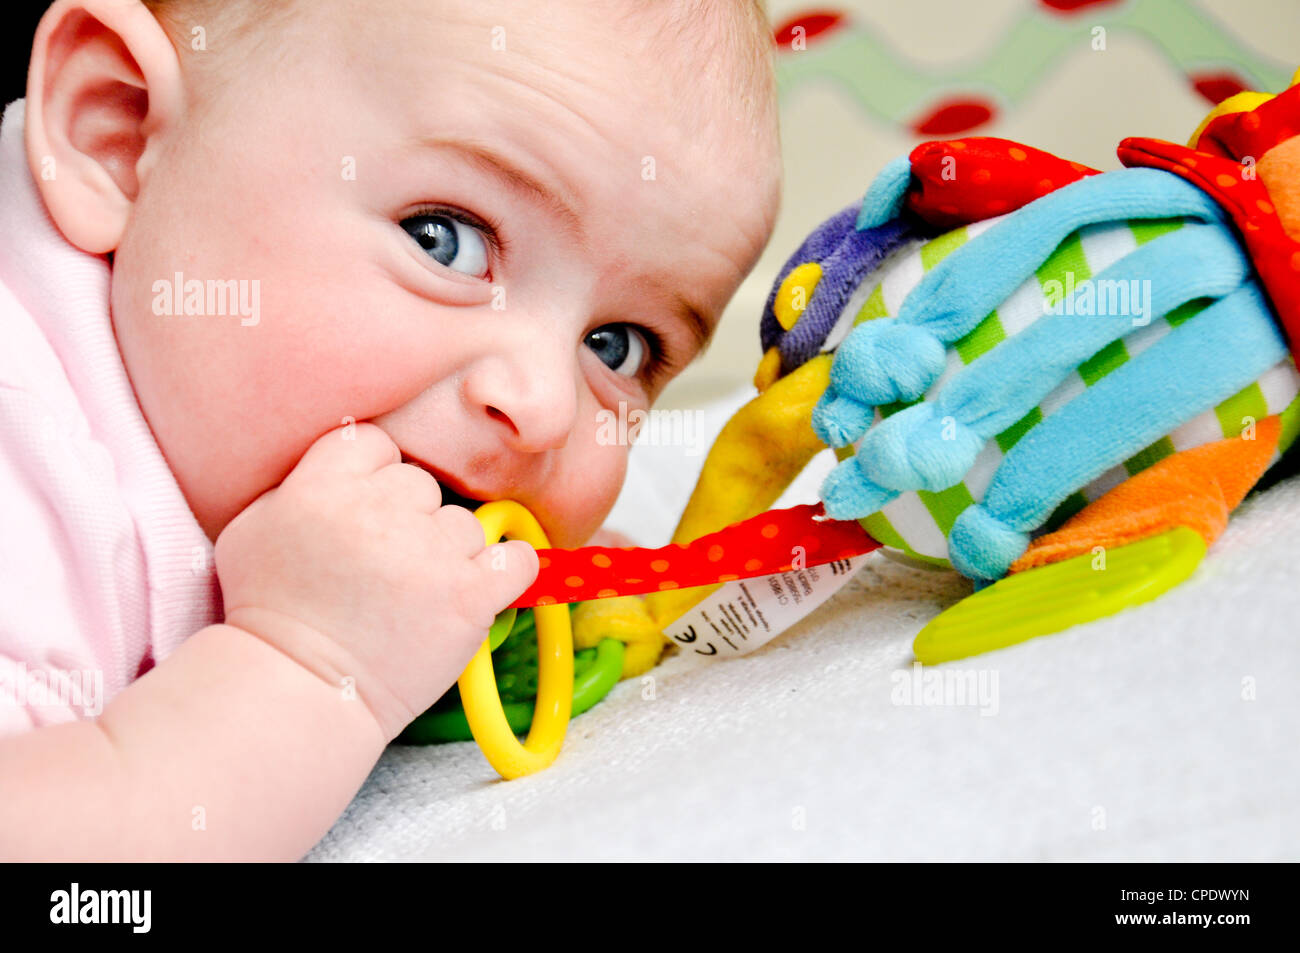 Toys for a month old baby